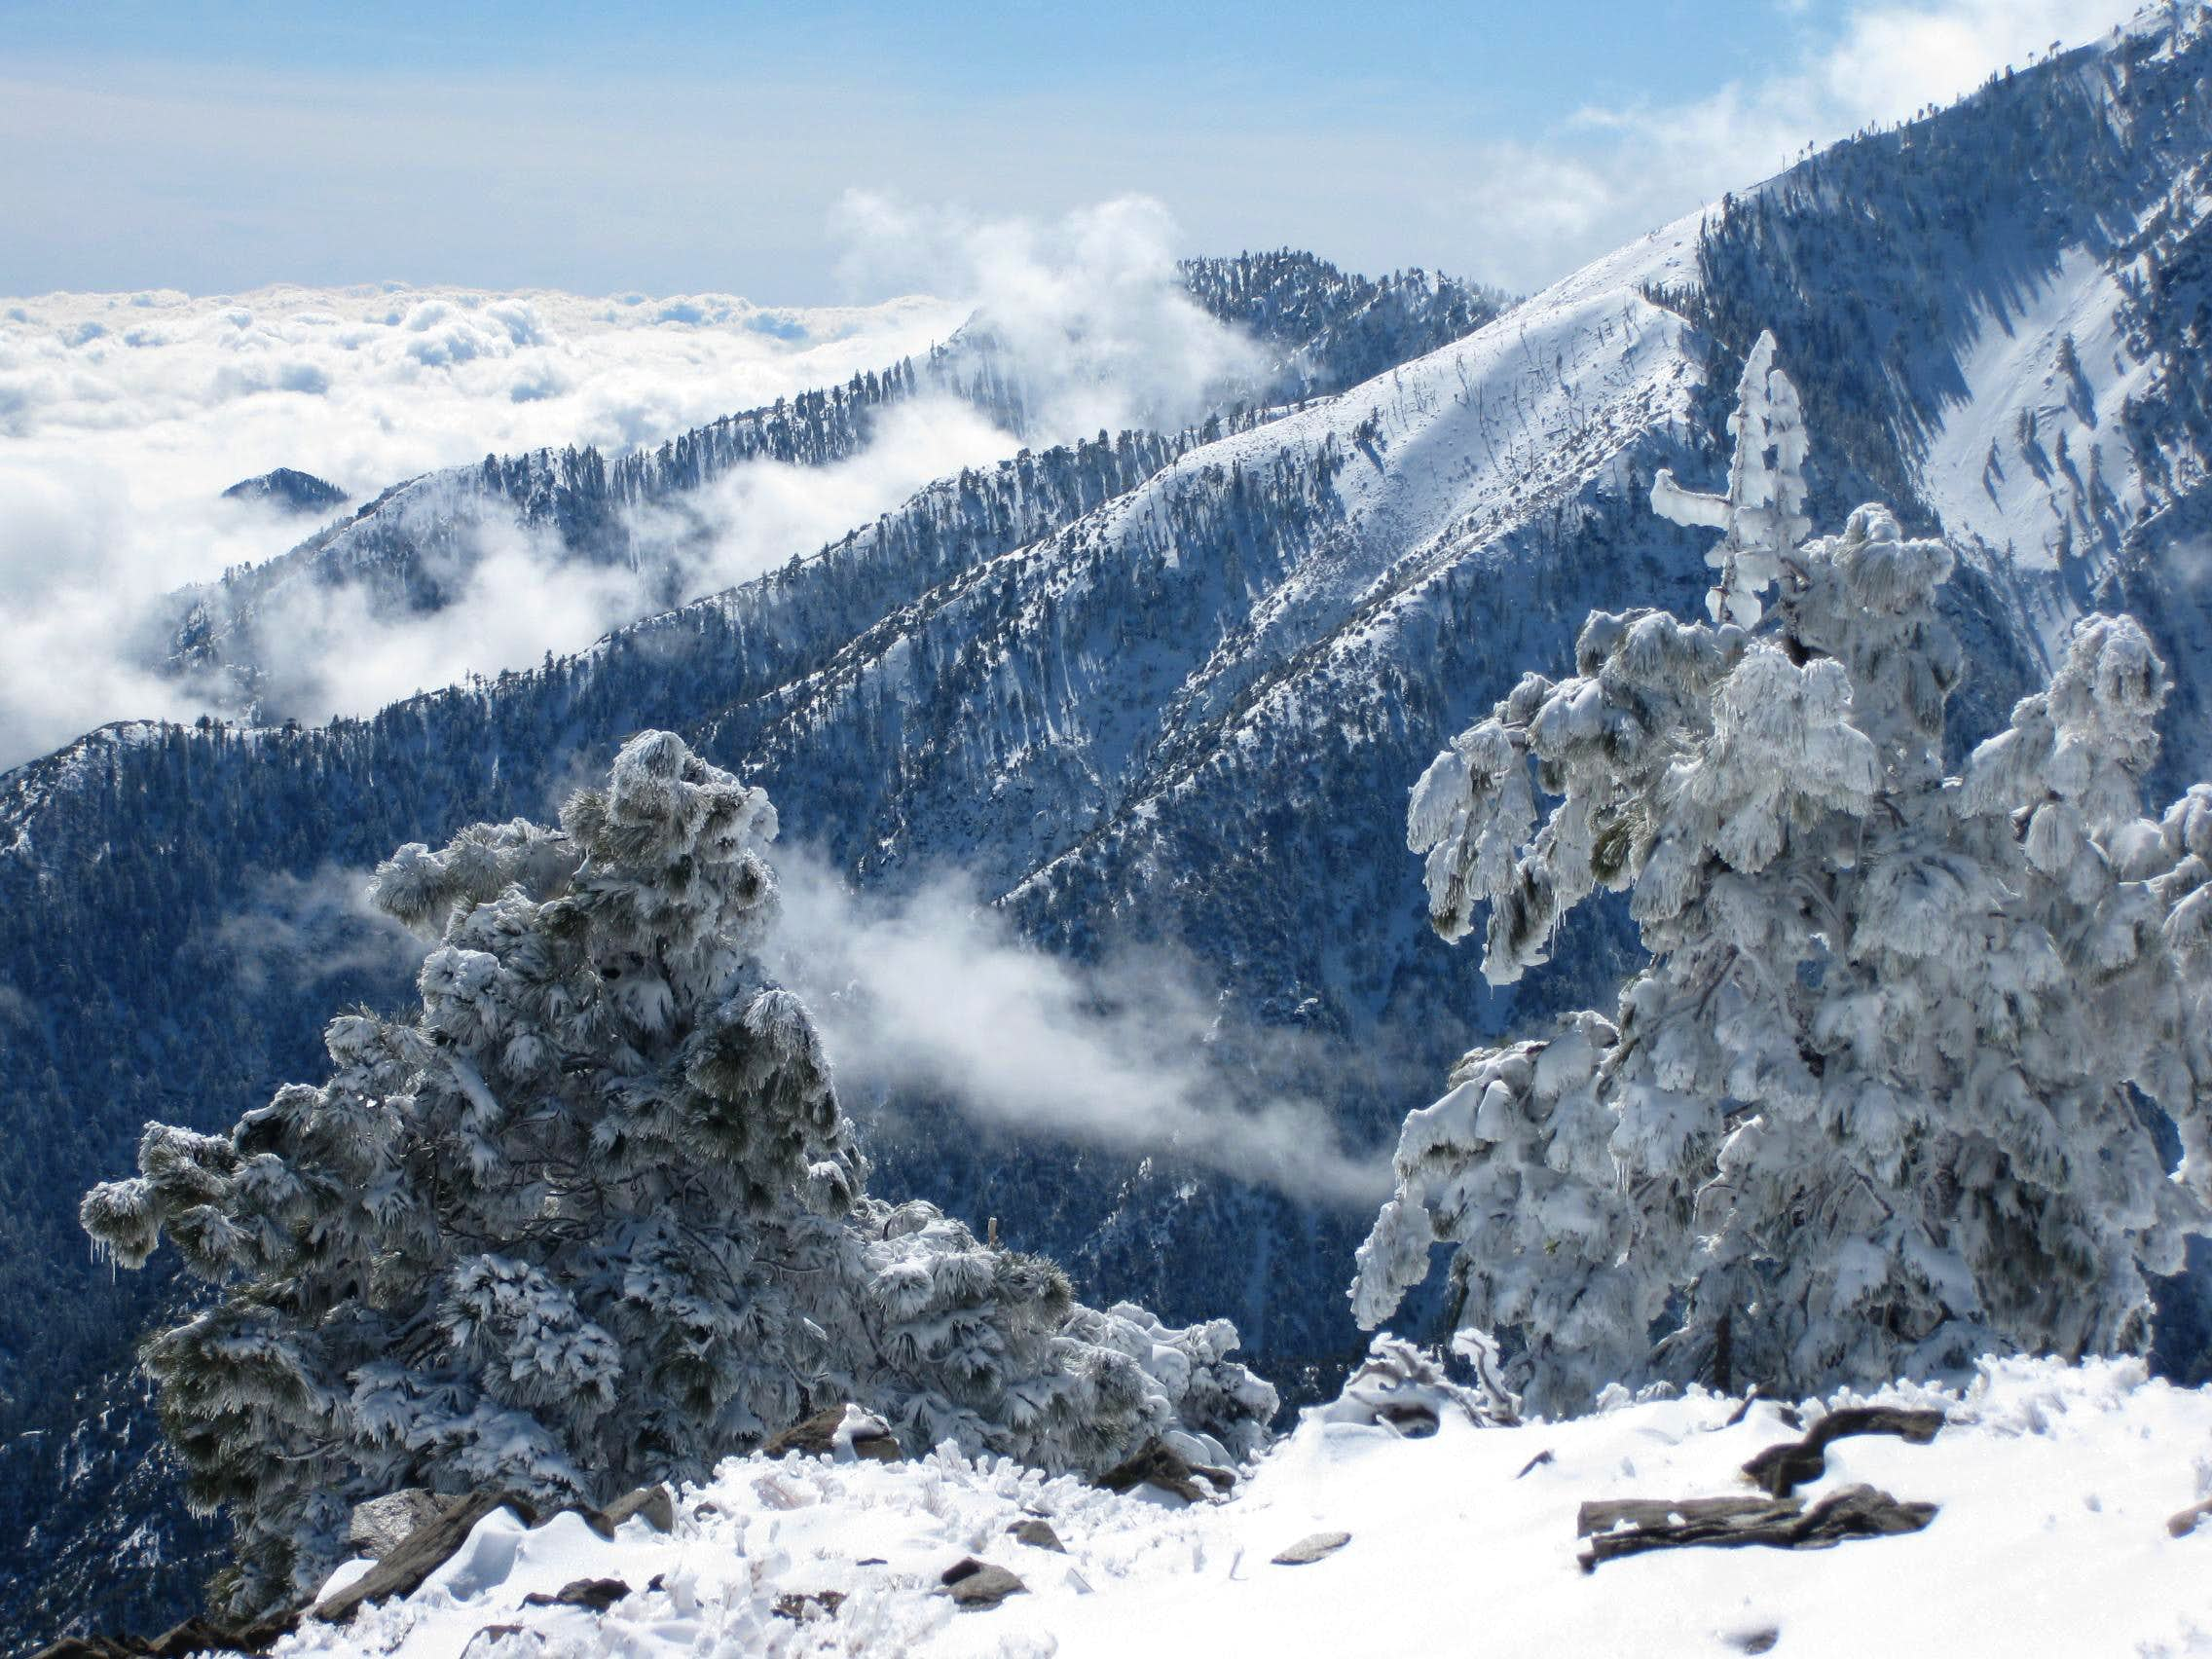 More Fantasy Than Adventure: Ice Sculptures in the San Gabriels